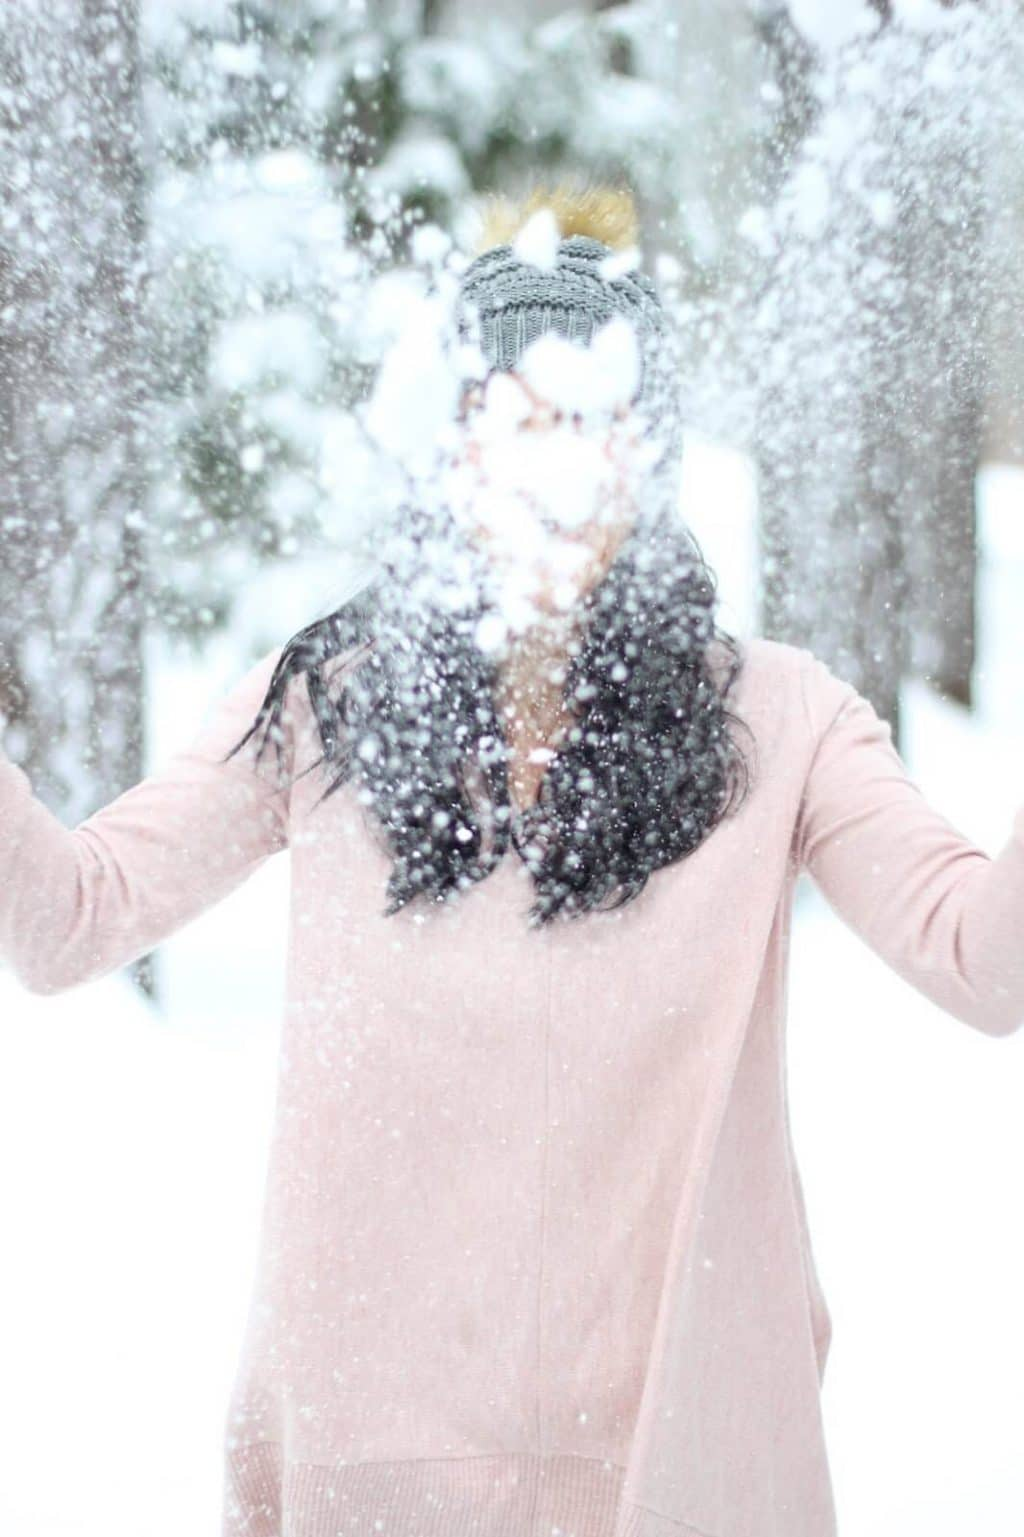 Snow throw picture